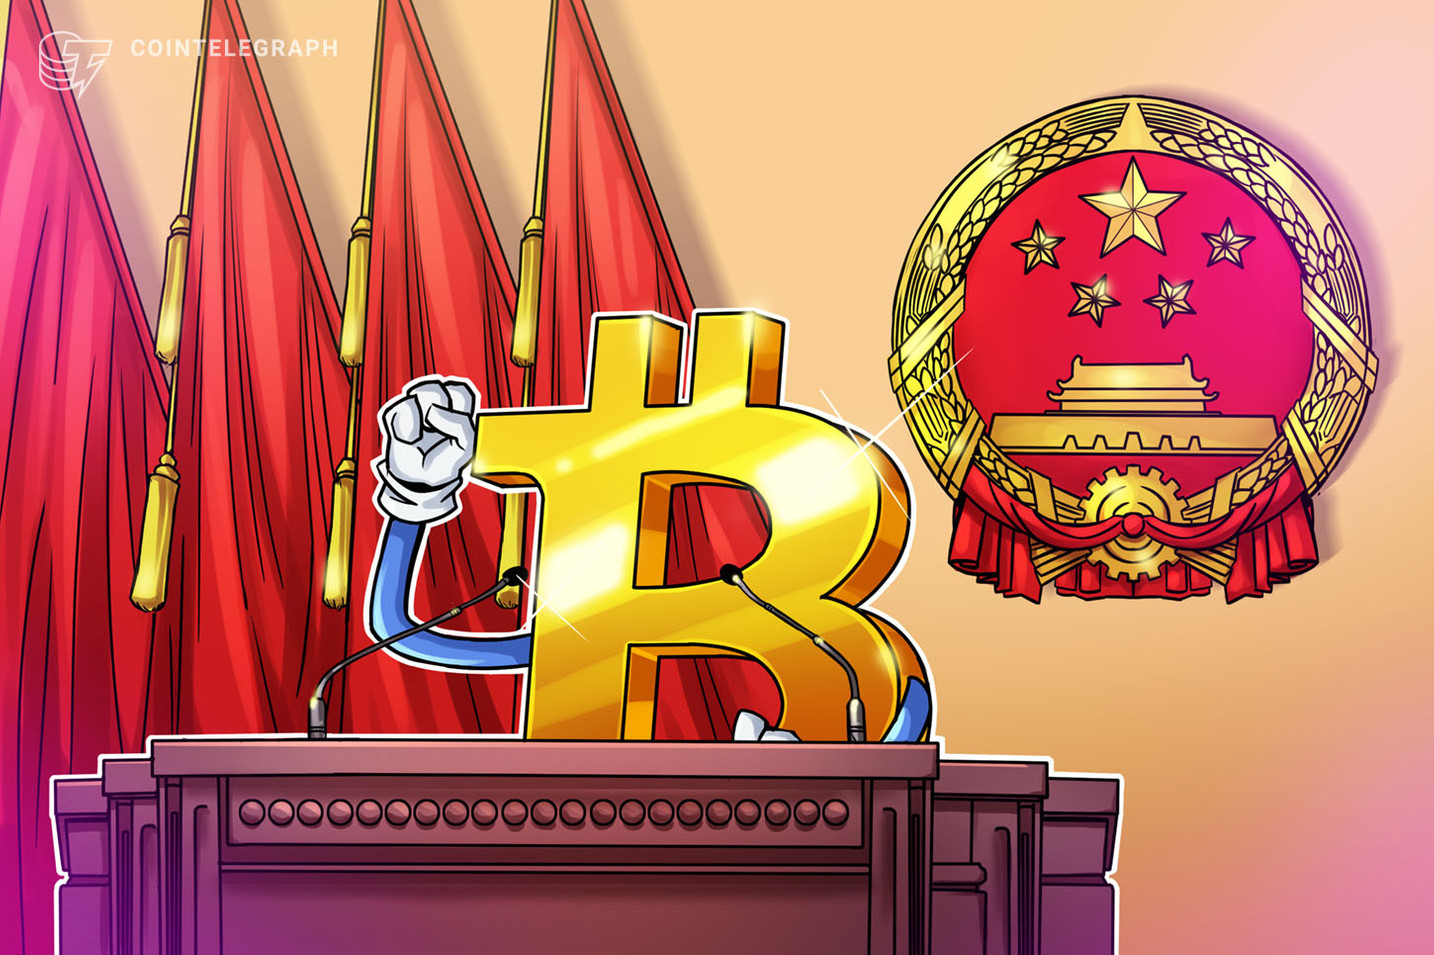 China 'endorses' BTC investment: 5 things to watch in Bitcoin this week